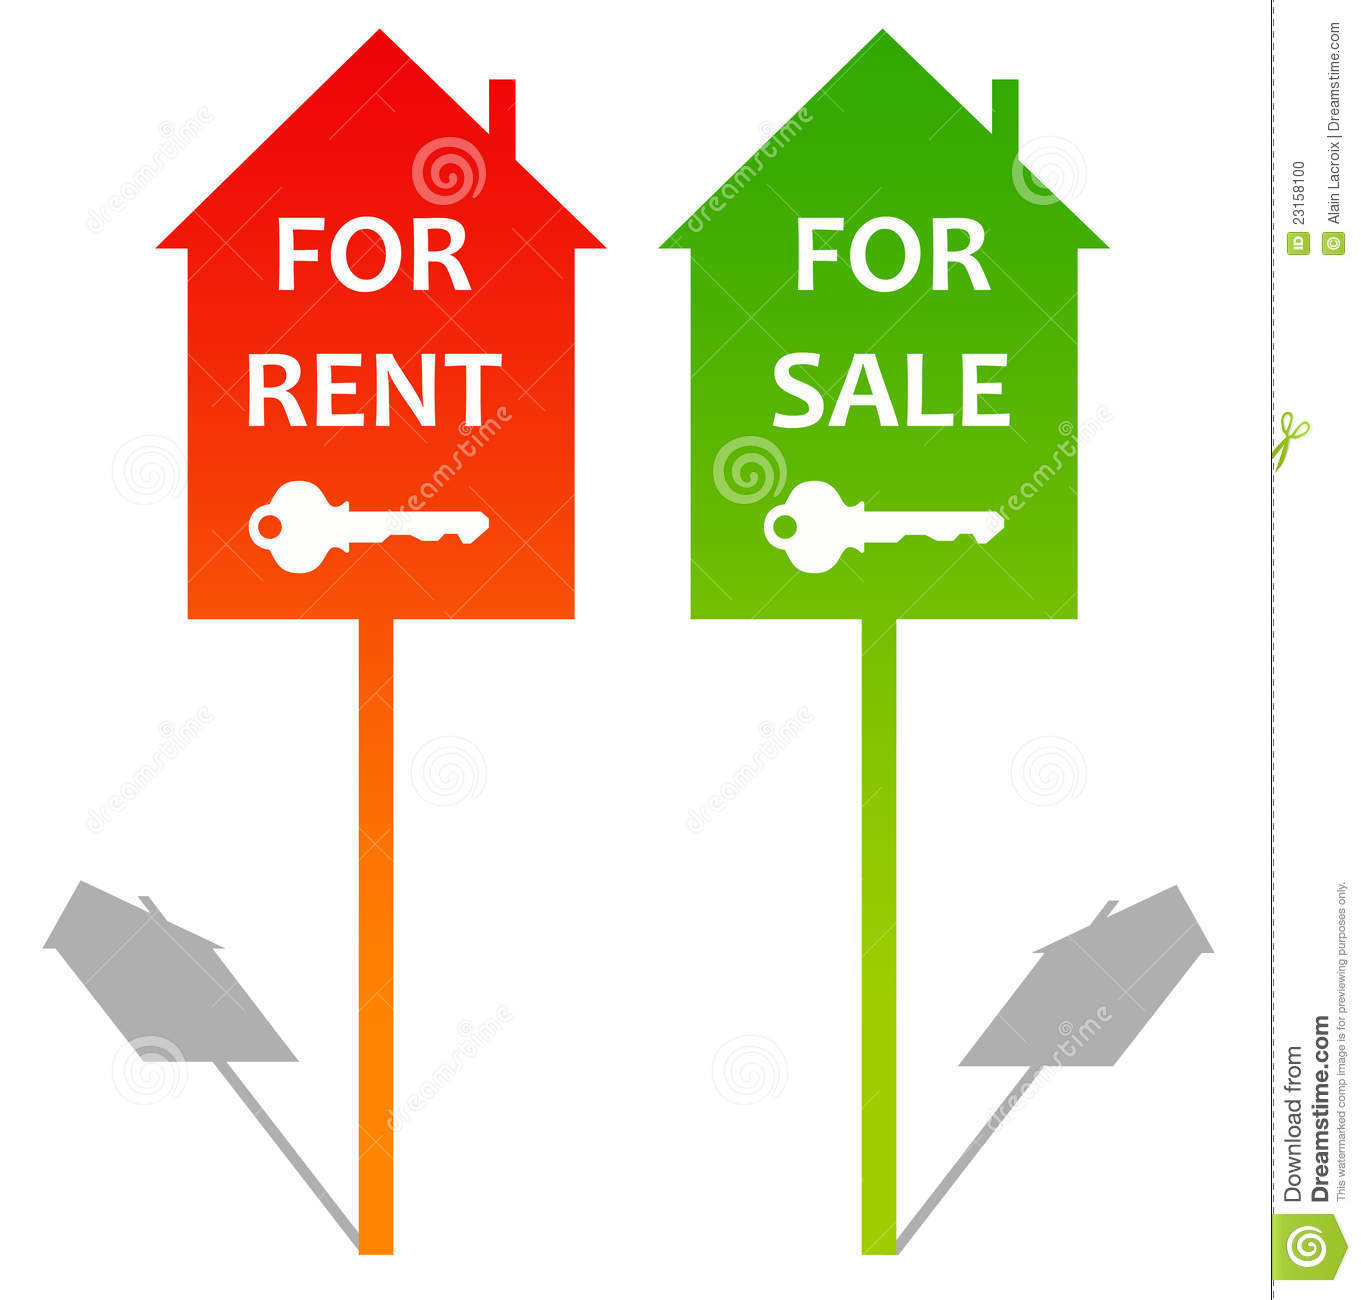 House For Rent Clip Art: For Rent Clipart